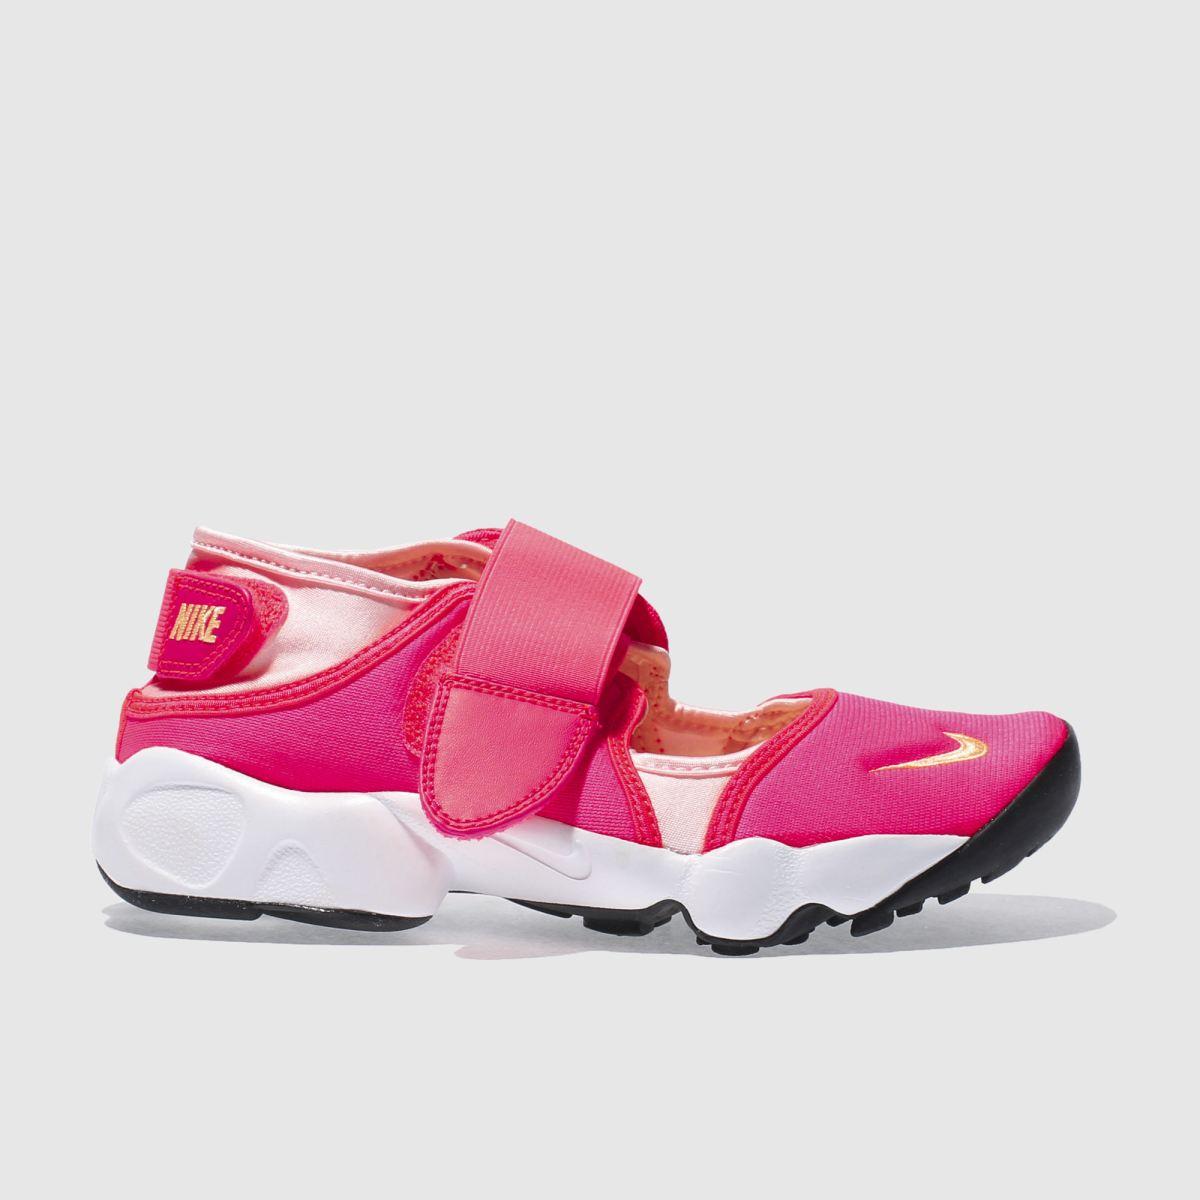 2c4355f2c82 Nike Pink Rift Trainers Youth